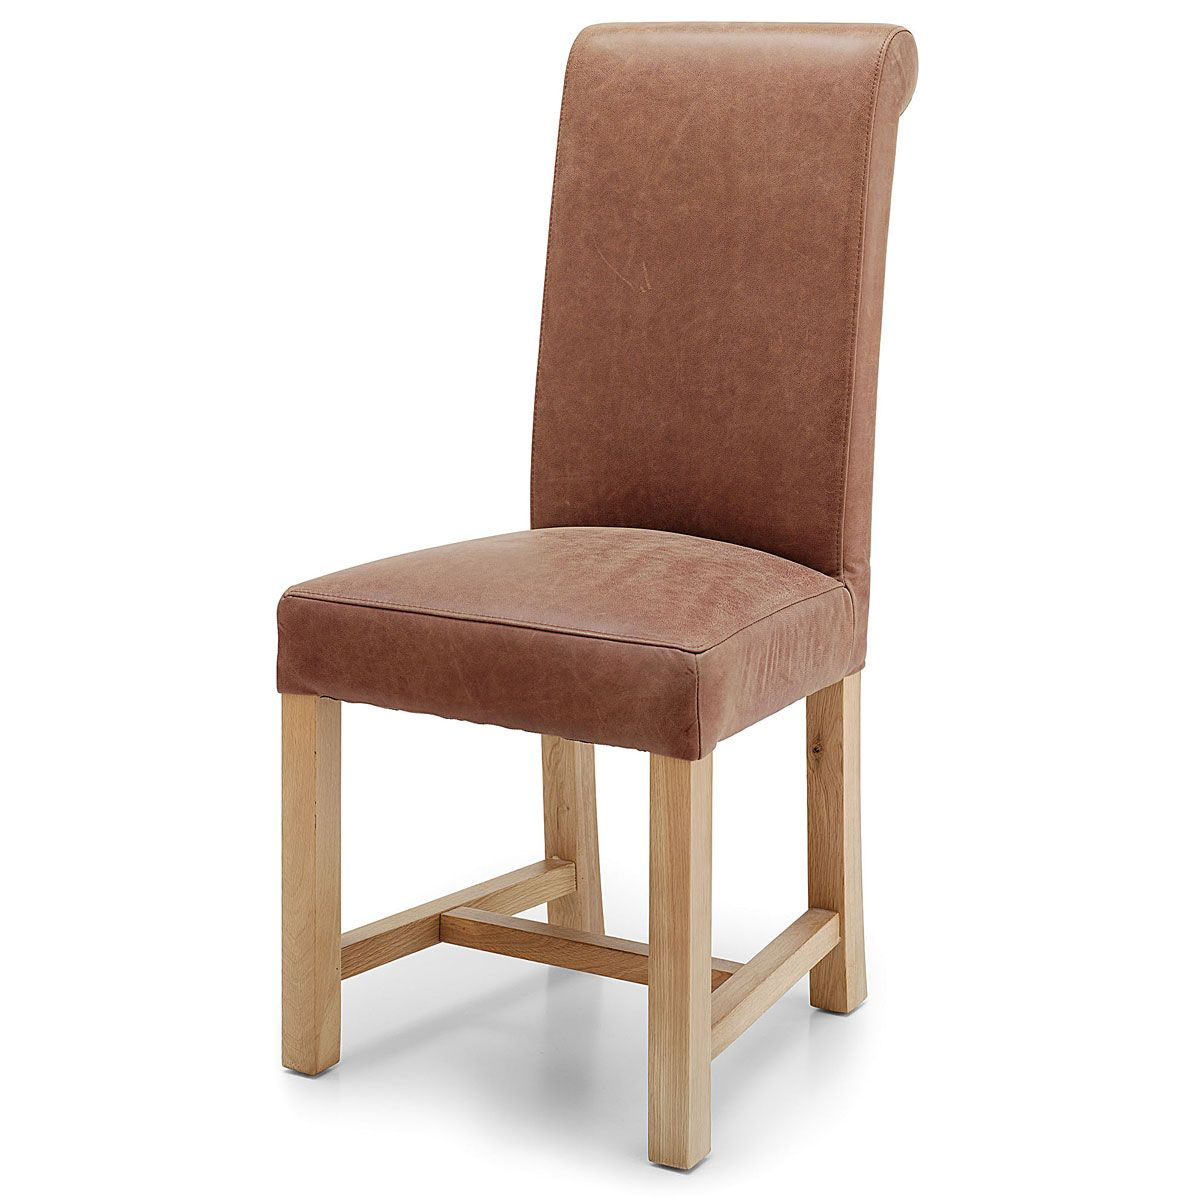 Dining Chairs Chicago: Chicago Latte Leather Chairs